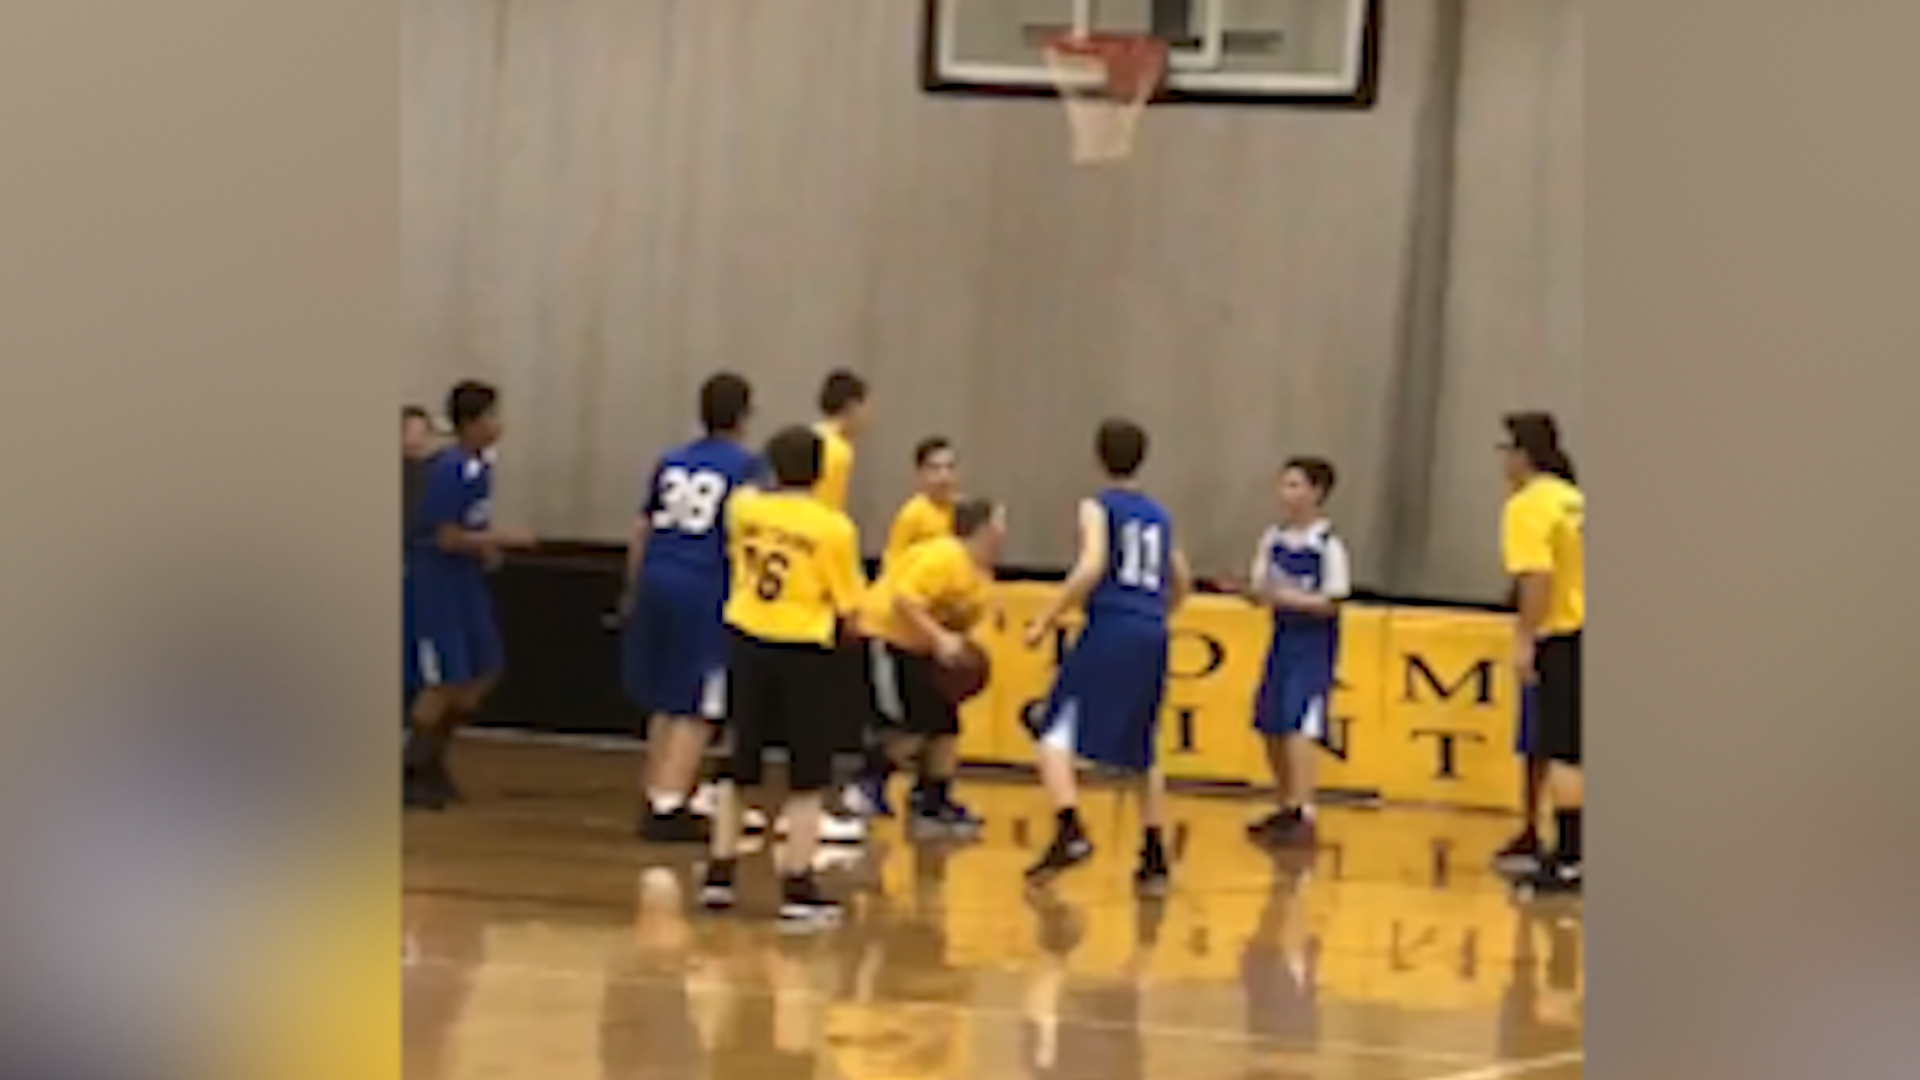 Team Cheers As Boy With Down Syndrome Scores In Basketball Game